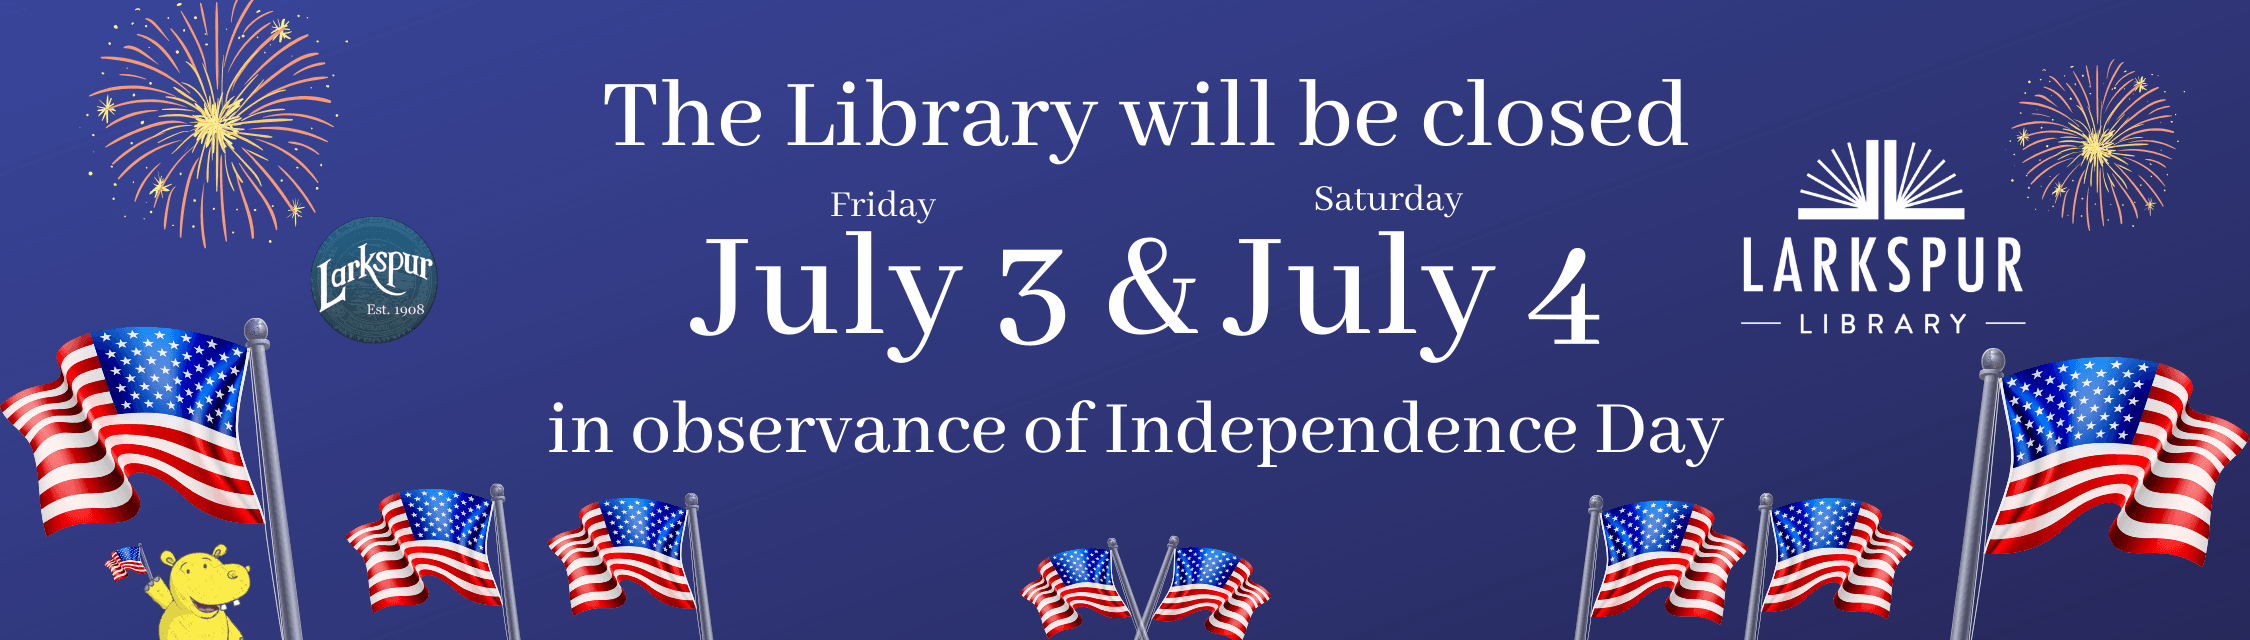 The Library will be closed Friday July 3 and Saturday July 4 for Independence Day